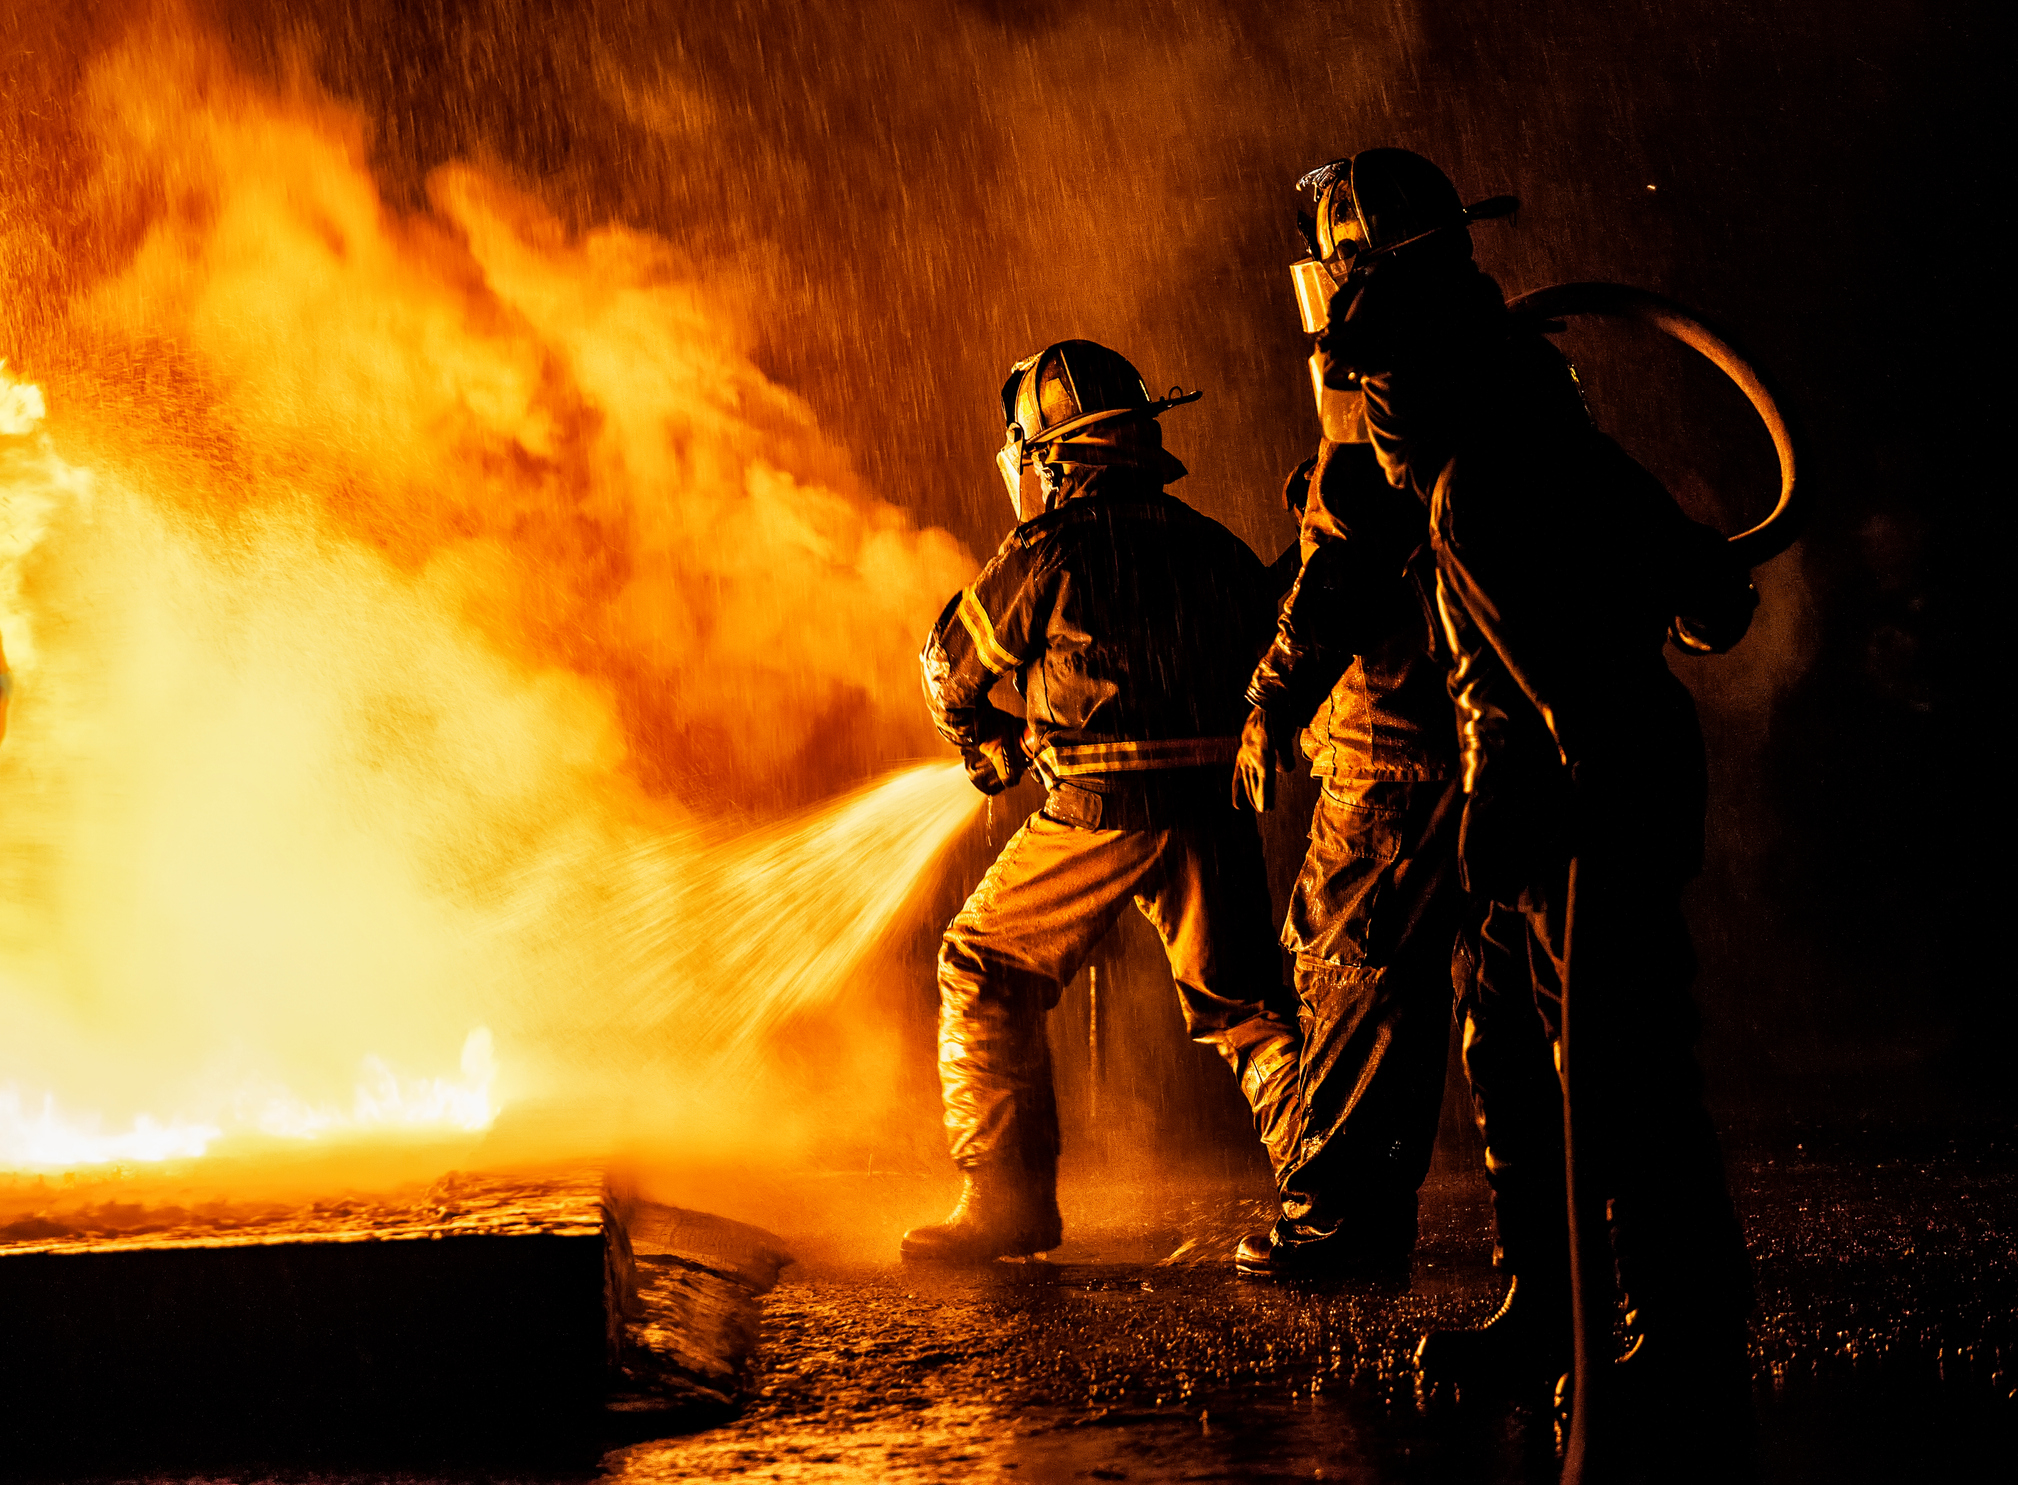 Two firefighters fighting a fire with a hose and water